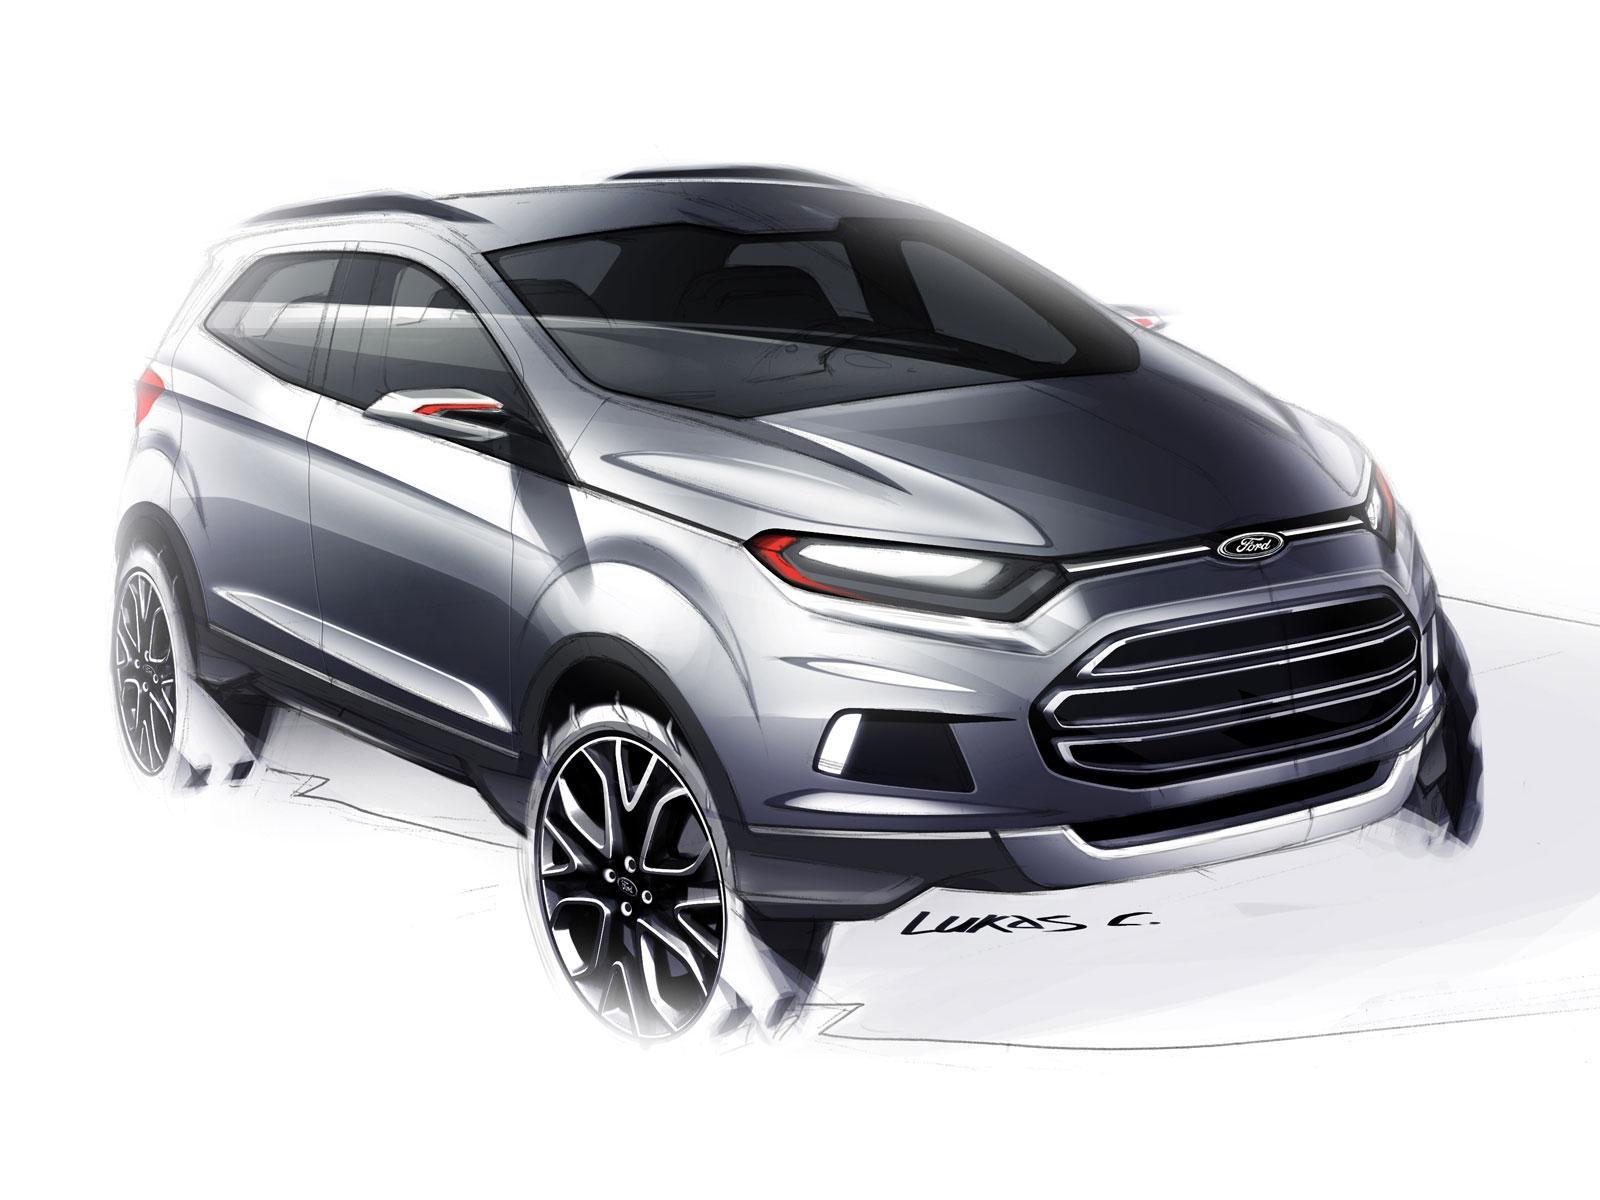 Ford EcoSport Concept Design Sketch - Car Body Design